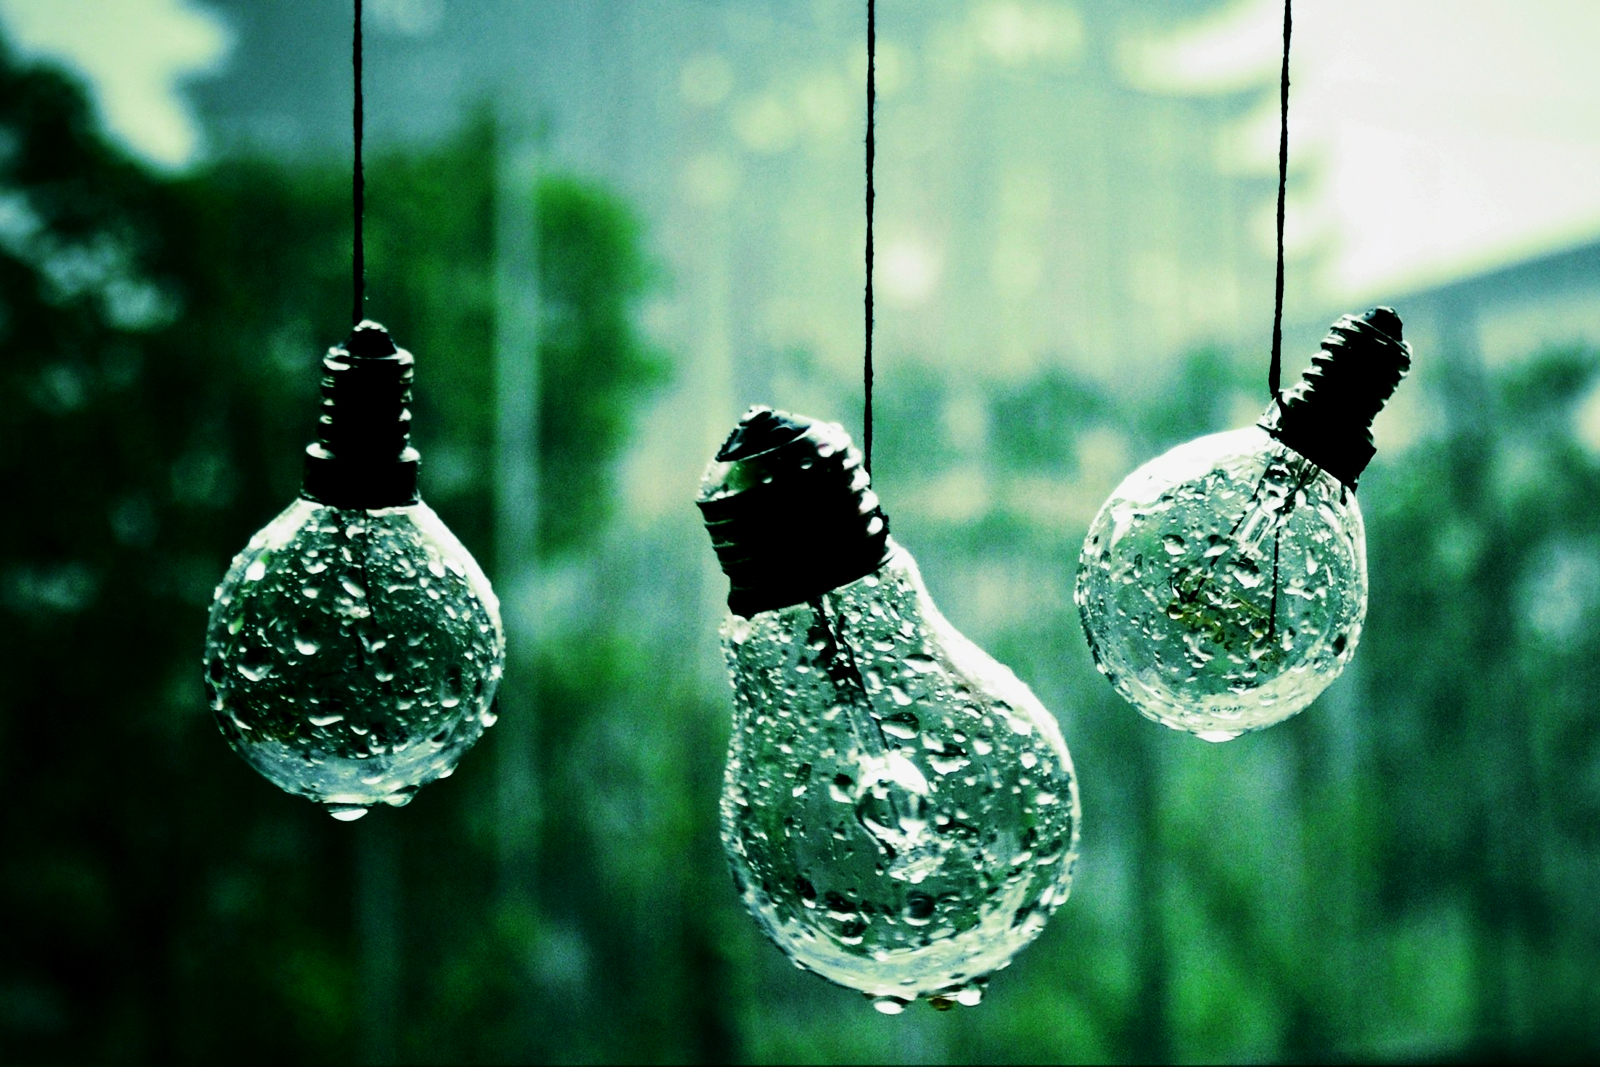 Light Bulb HD Wallpapers Stock Photos HD Wallpapers ,Backgrounds ,Photos ,Pictures, Image ,PC